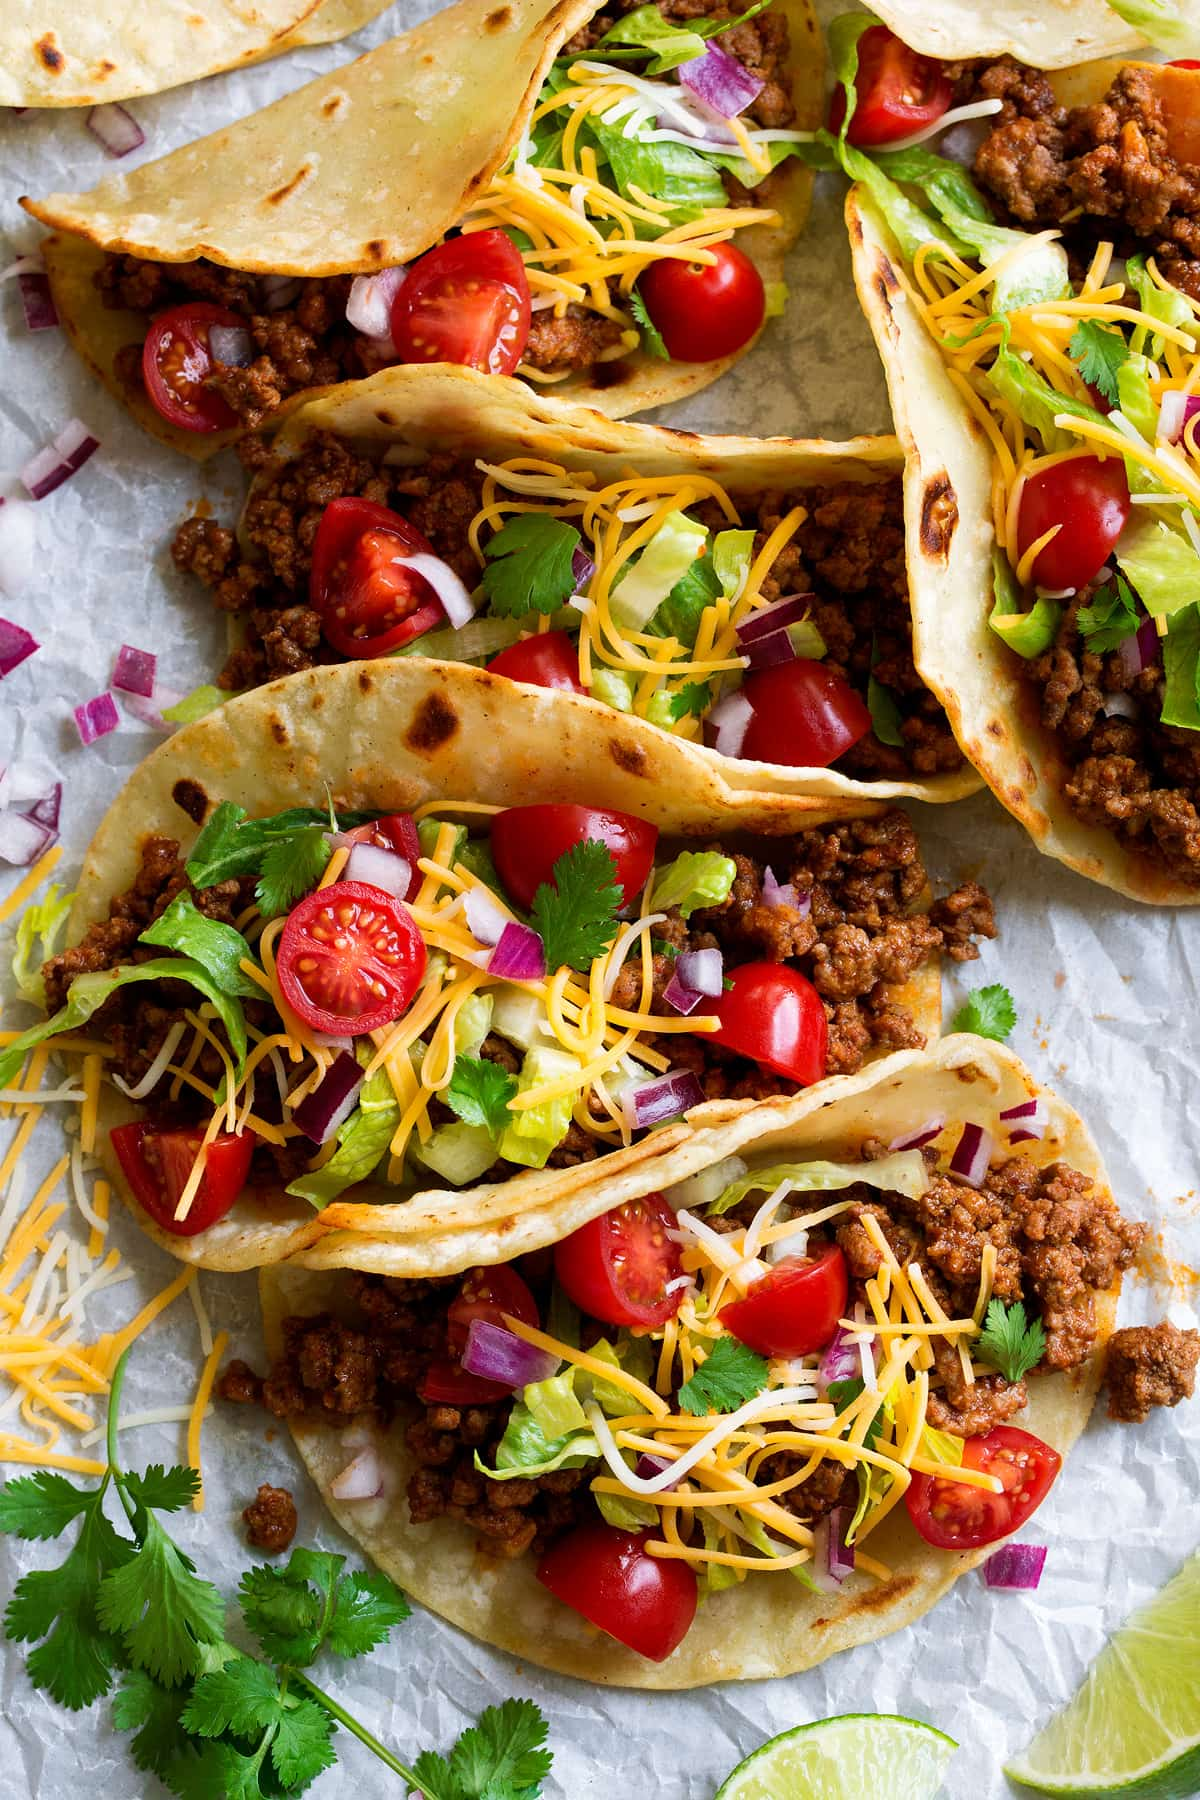 Row of tacos filled with ground beef filling, cheese, lettuce, tomatoes, and cilantro.